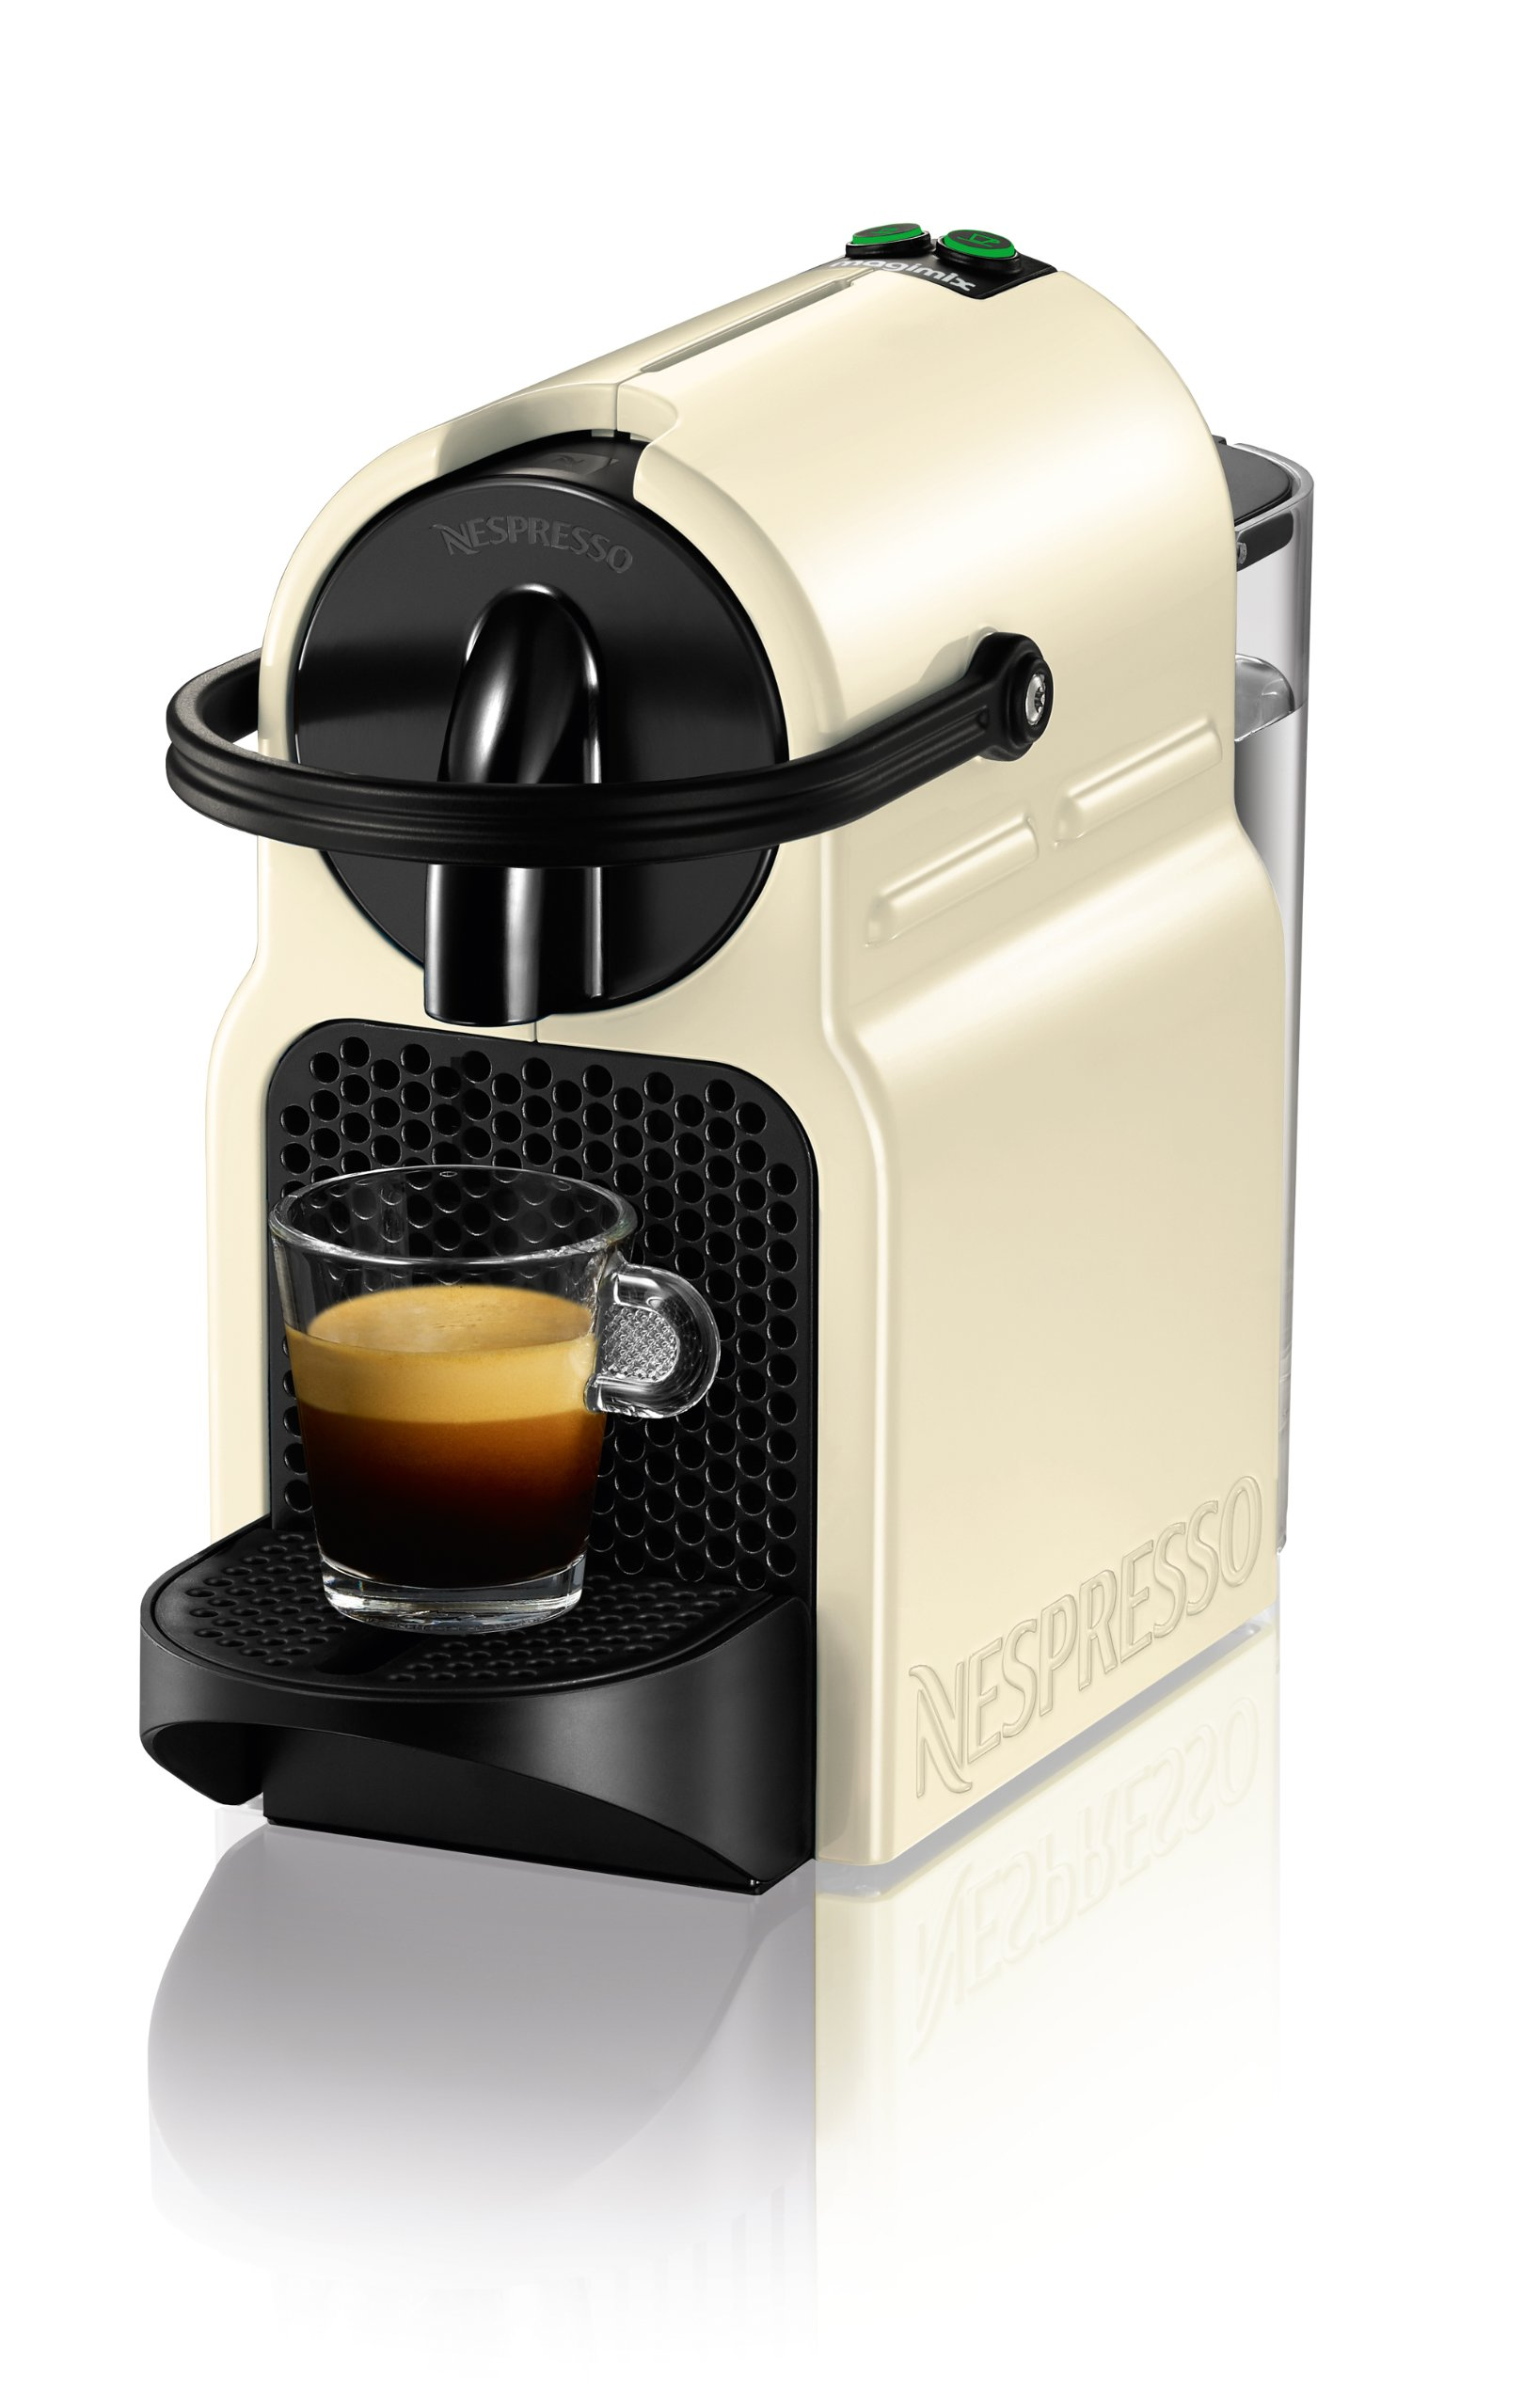 Magimix Nespresso Inissia Coffee Machine, Cream | eBay